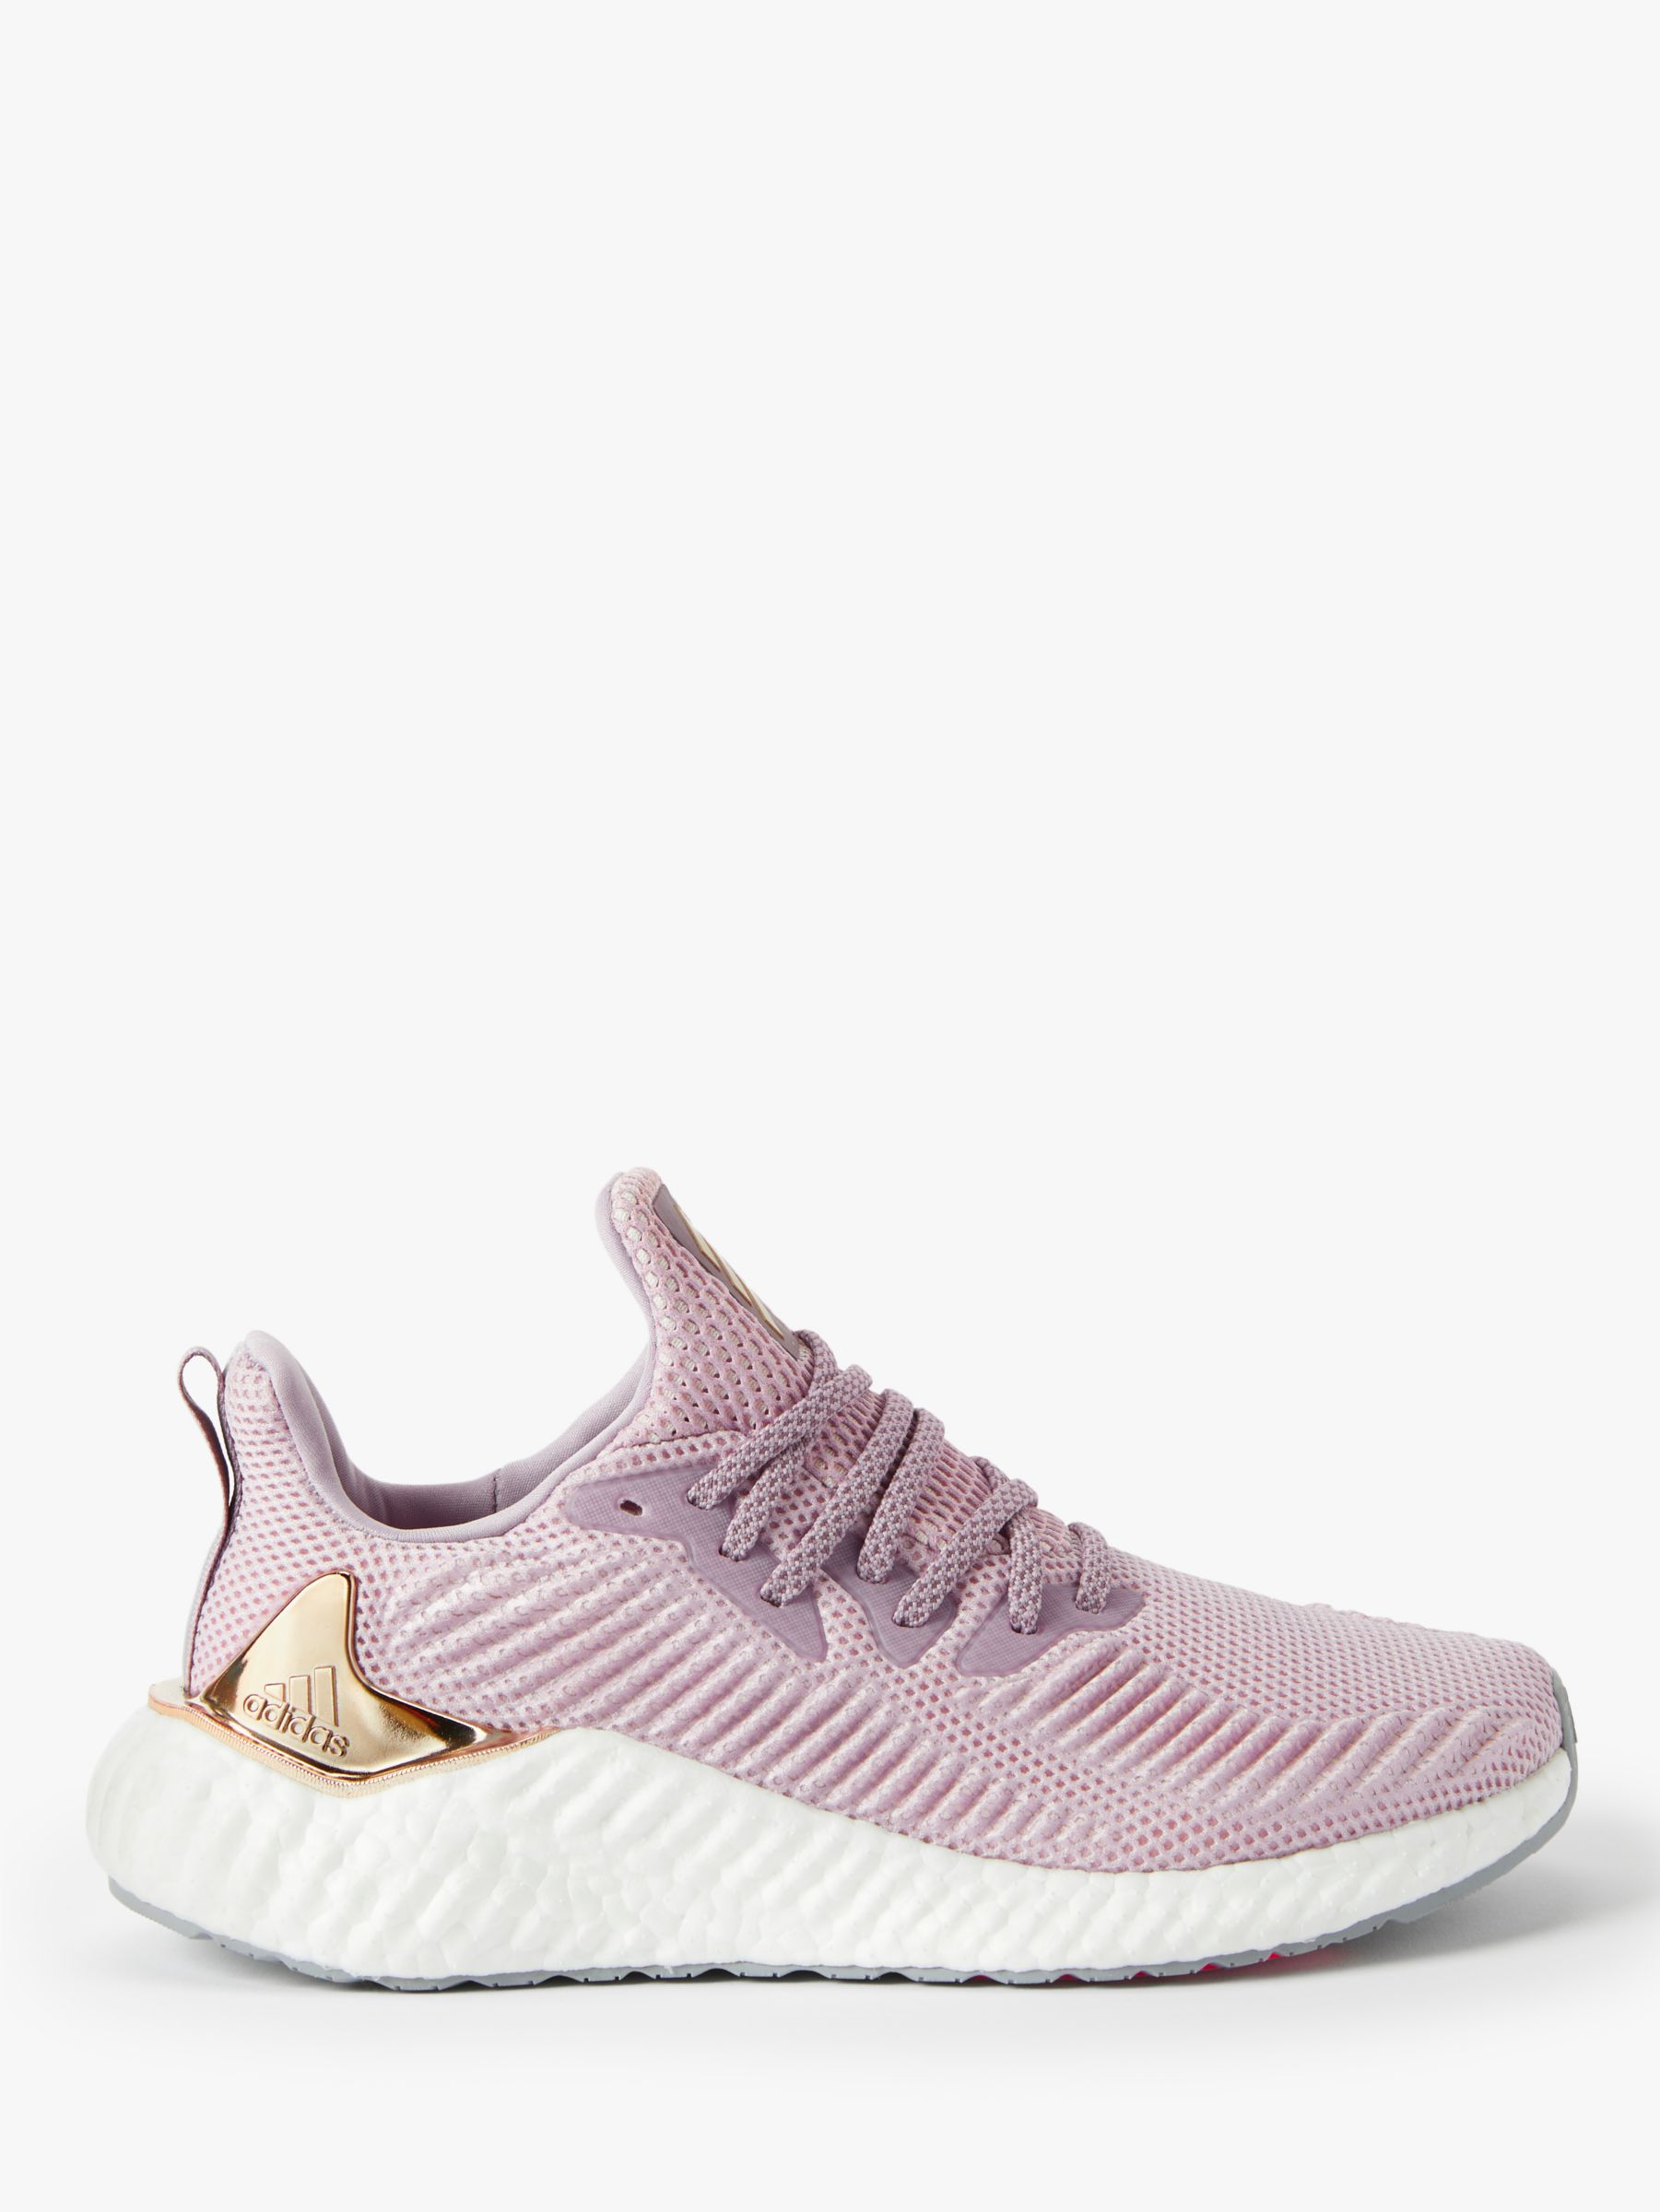 Buy adidas Alphaboost Women's Running Shoes, Soft Vision/Copper Met./Orchid Tint, 4 Online at johnlewis.com